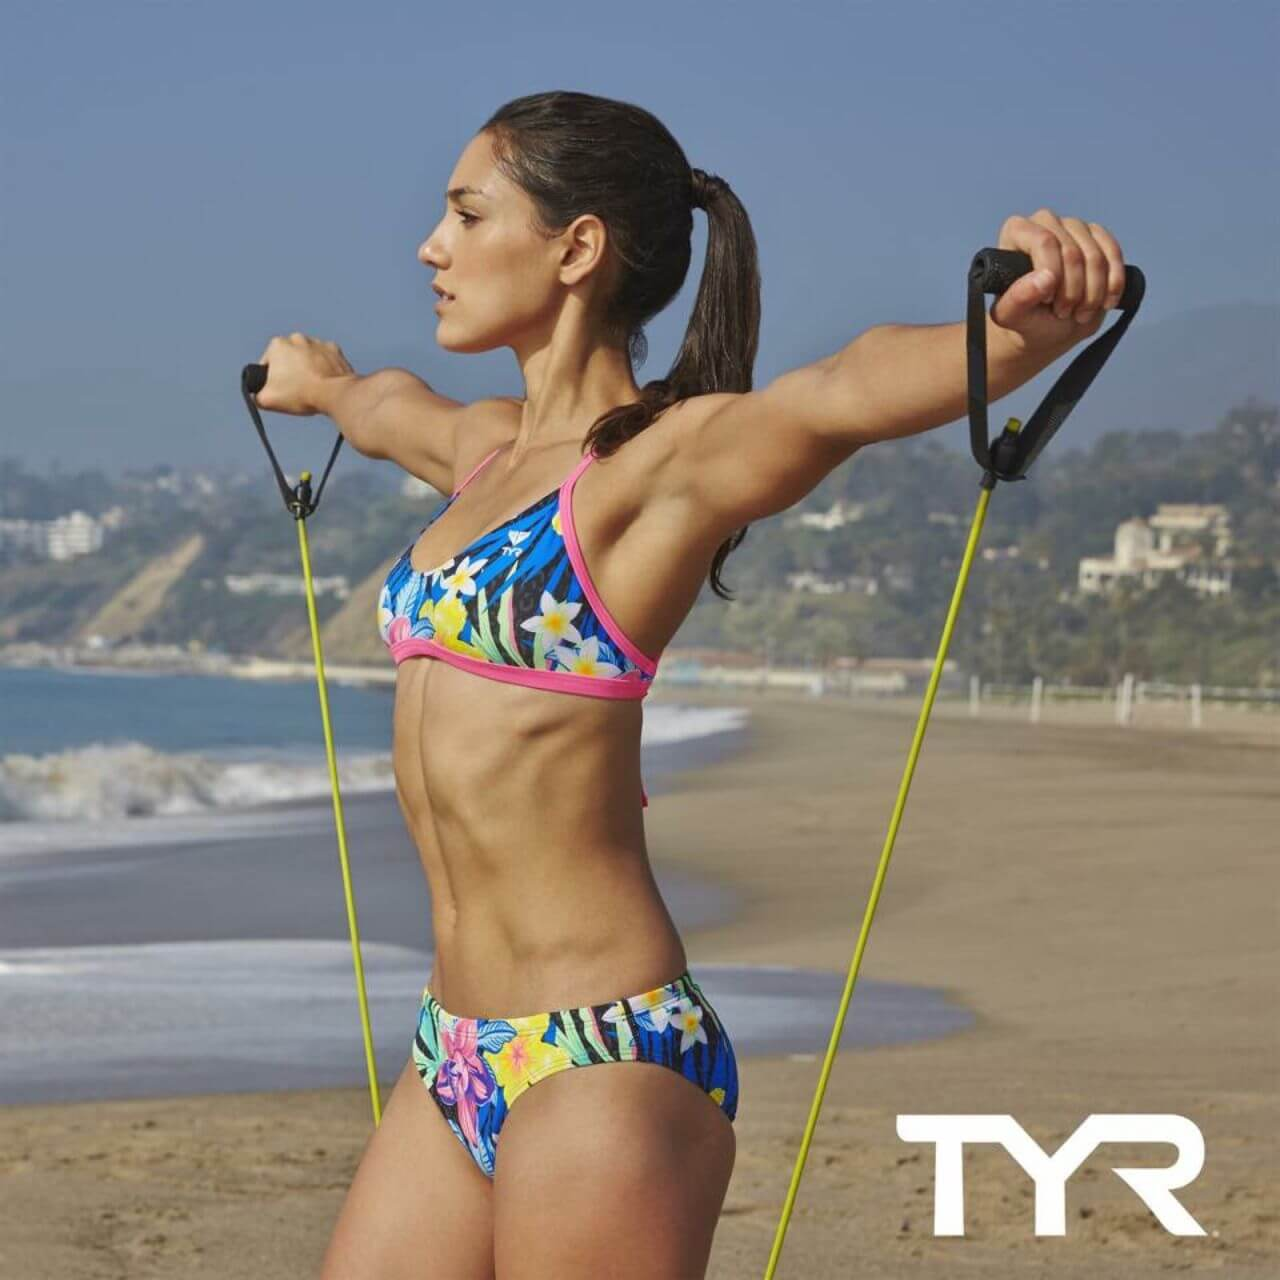 Allison Stokke Naked 49 hottest allison stokke bikini pictures that are sure to